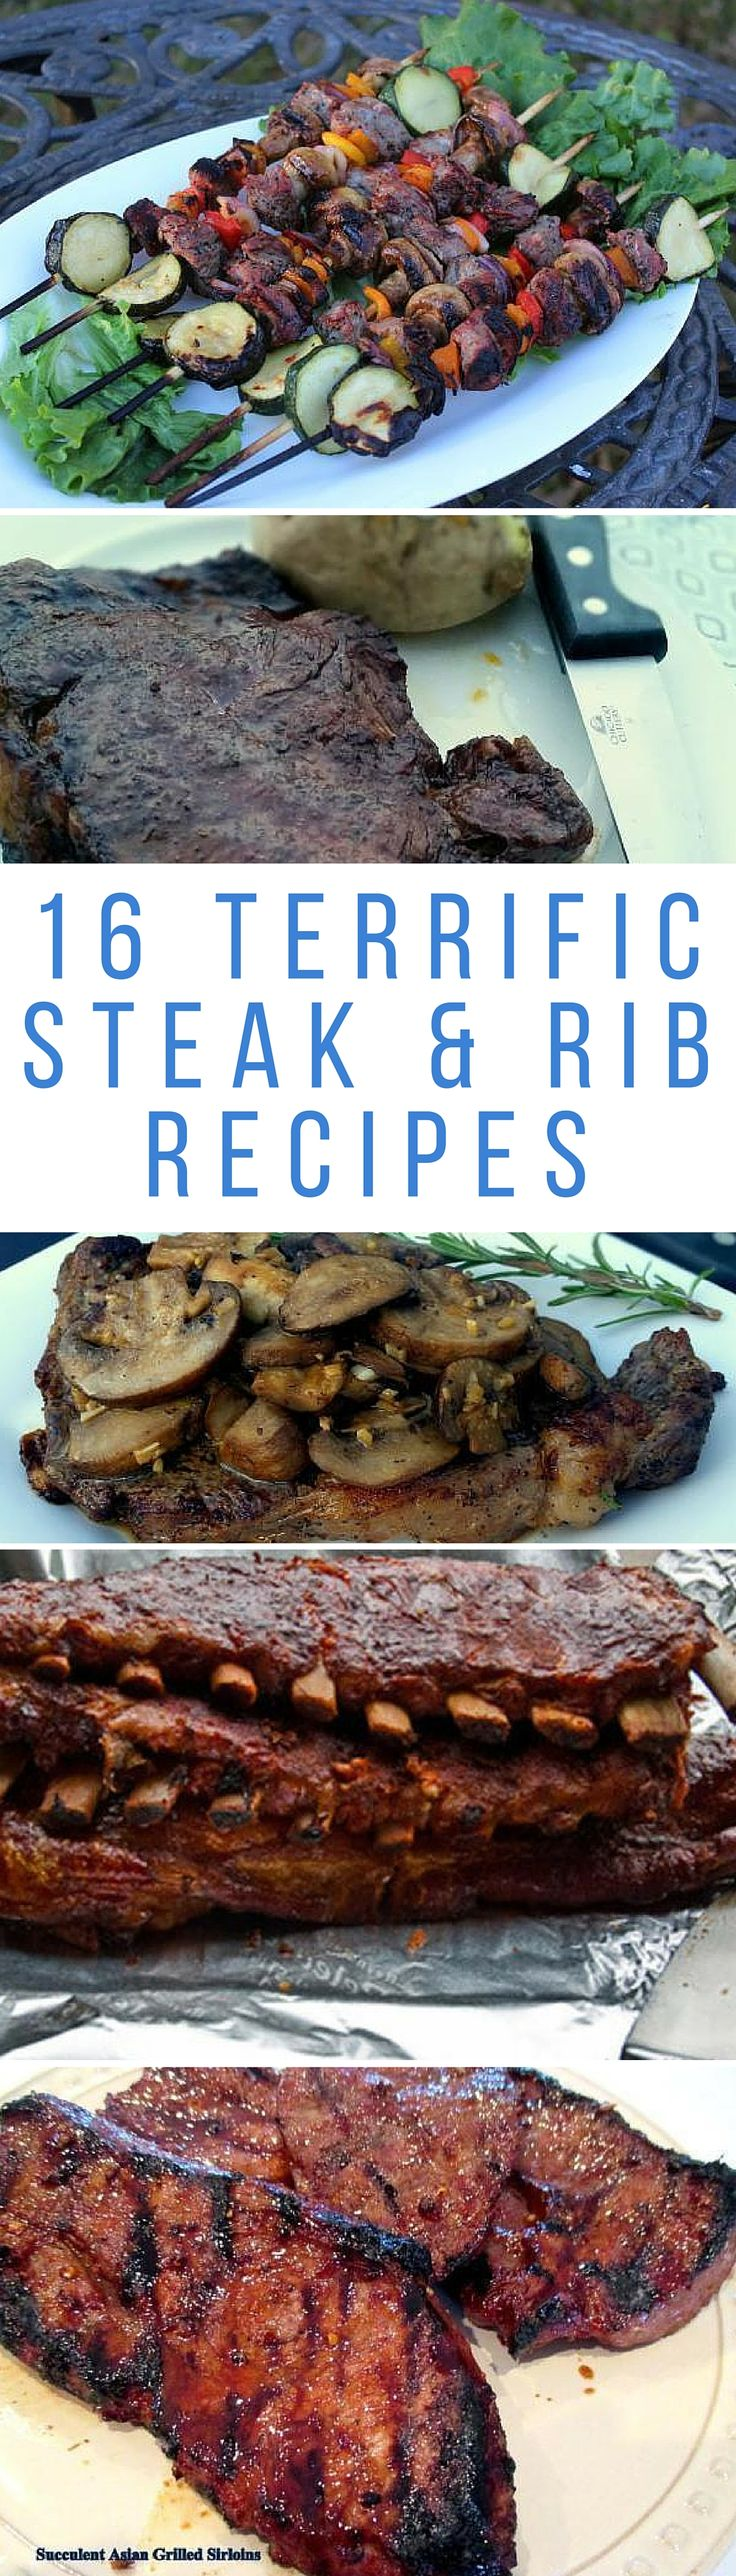 Treat dad to one of these 16 terrific steak and rib recipes this Father's Day.